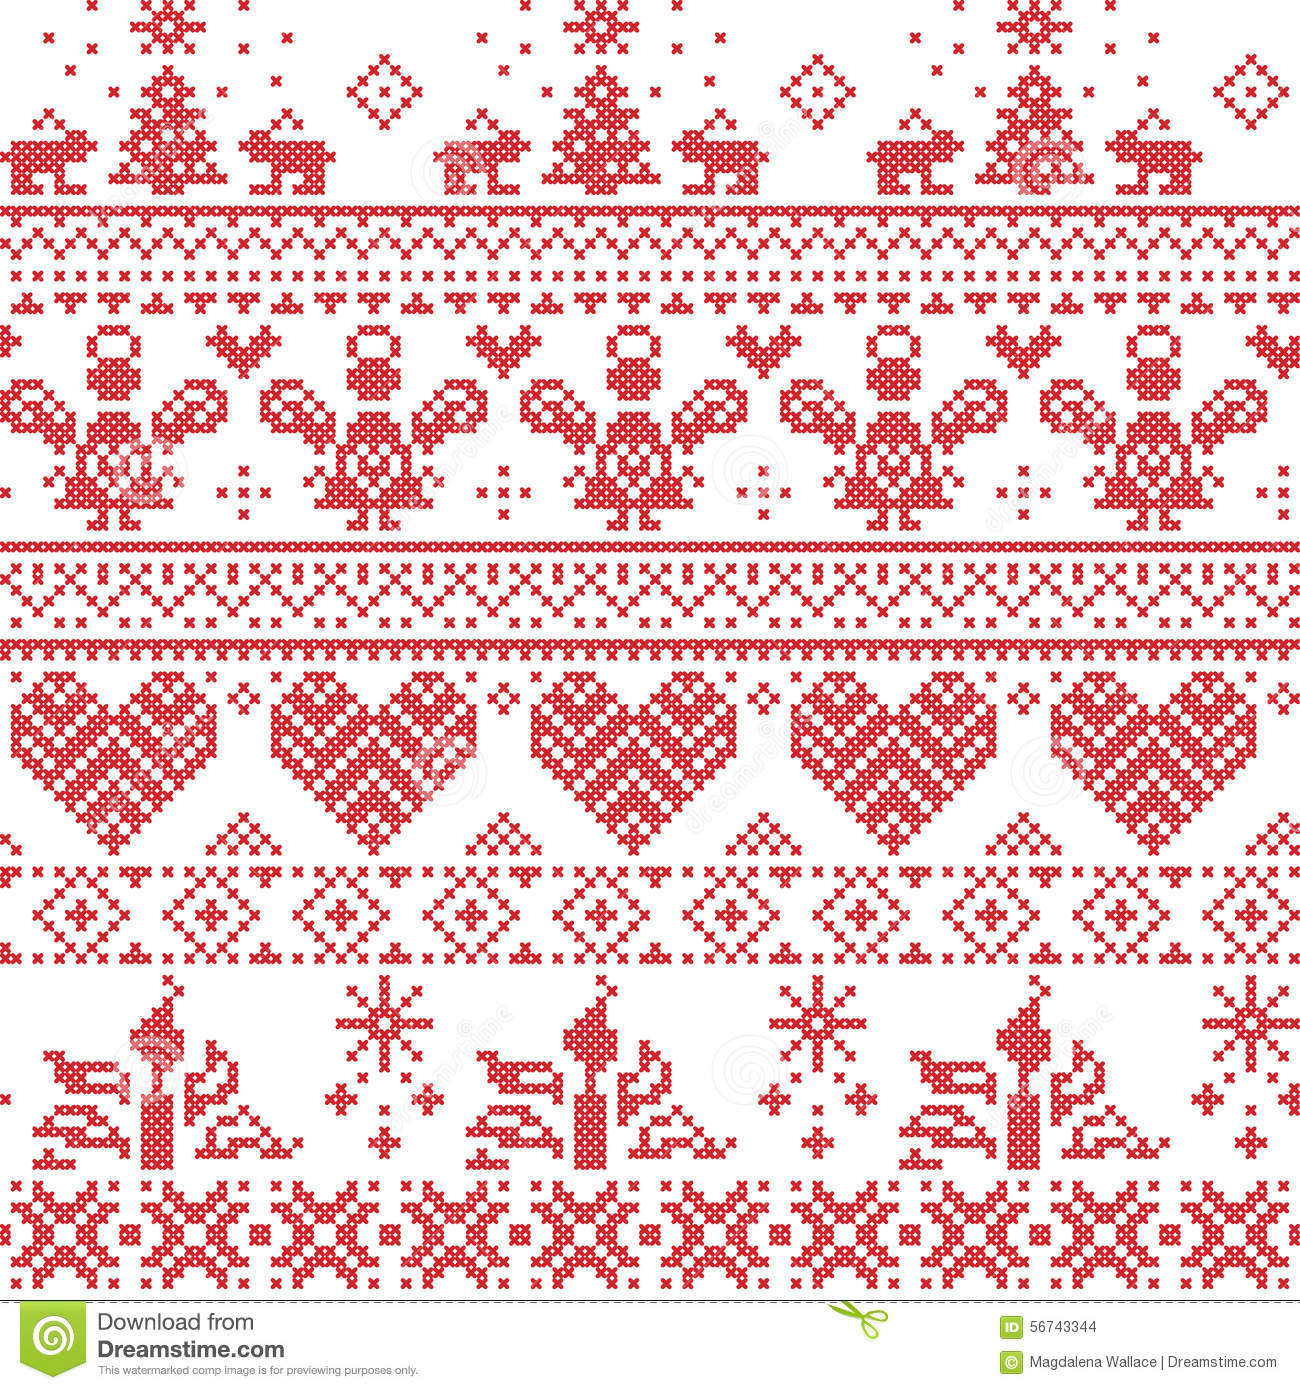 scandinavian-nordic-christmas-seamless-cross-stitch-pattern-angels-xmas-trees-rabbits-snowflakes-candles-white-red-56743344